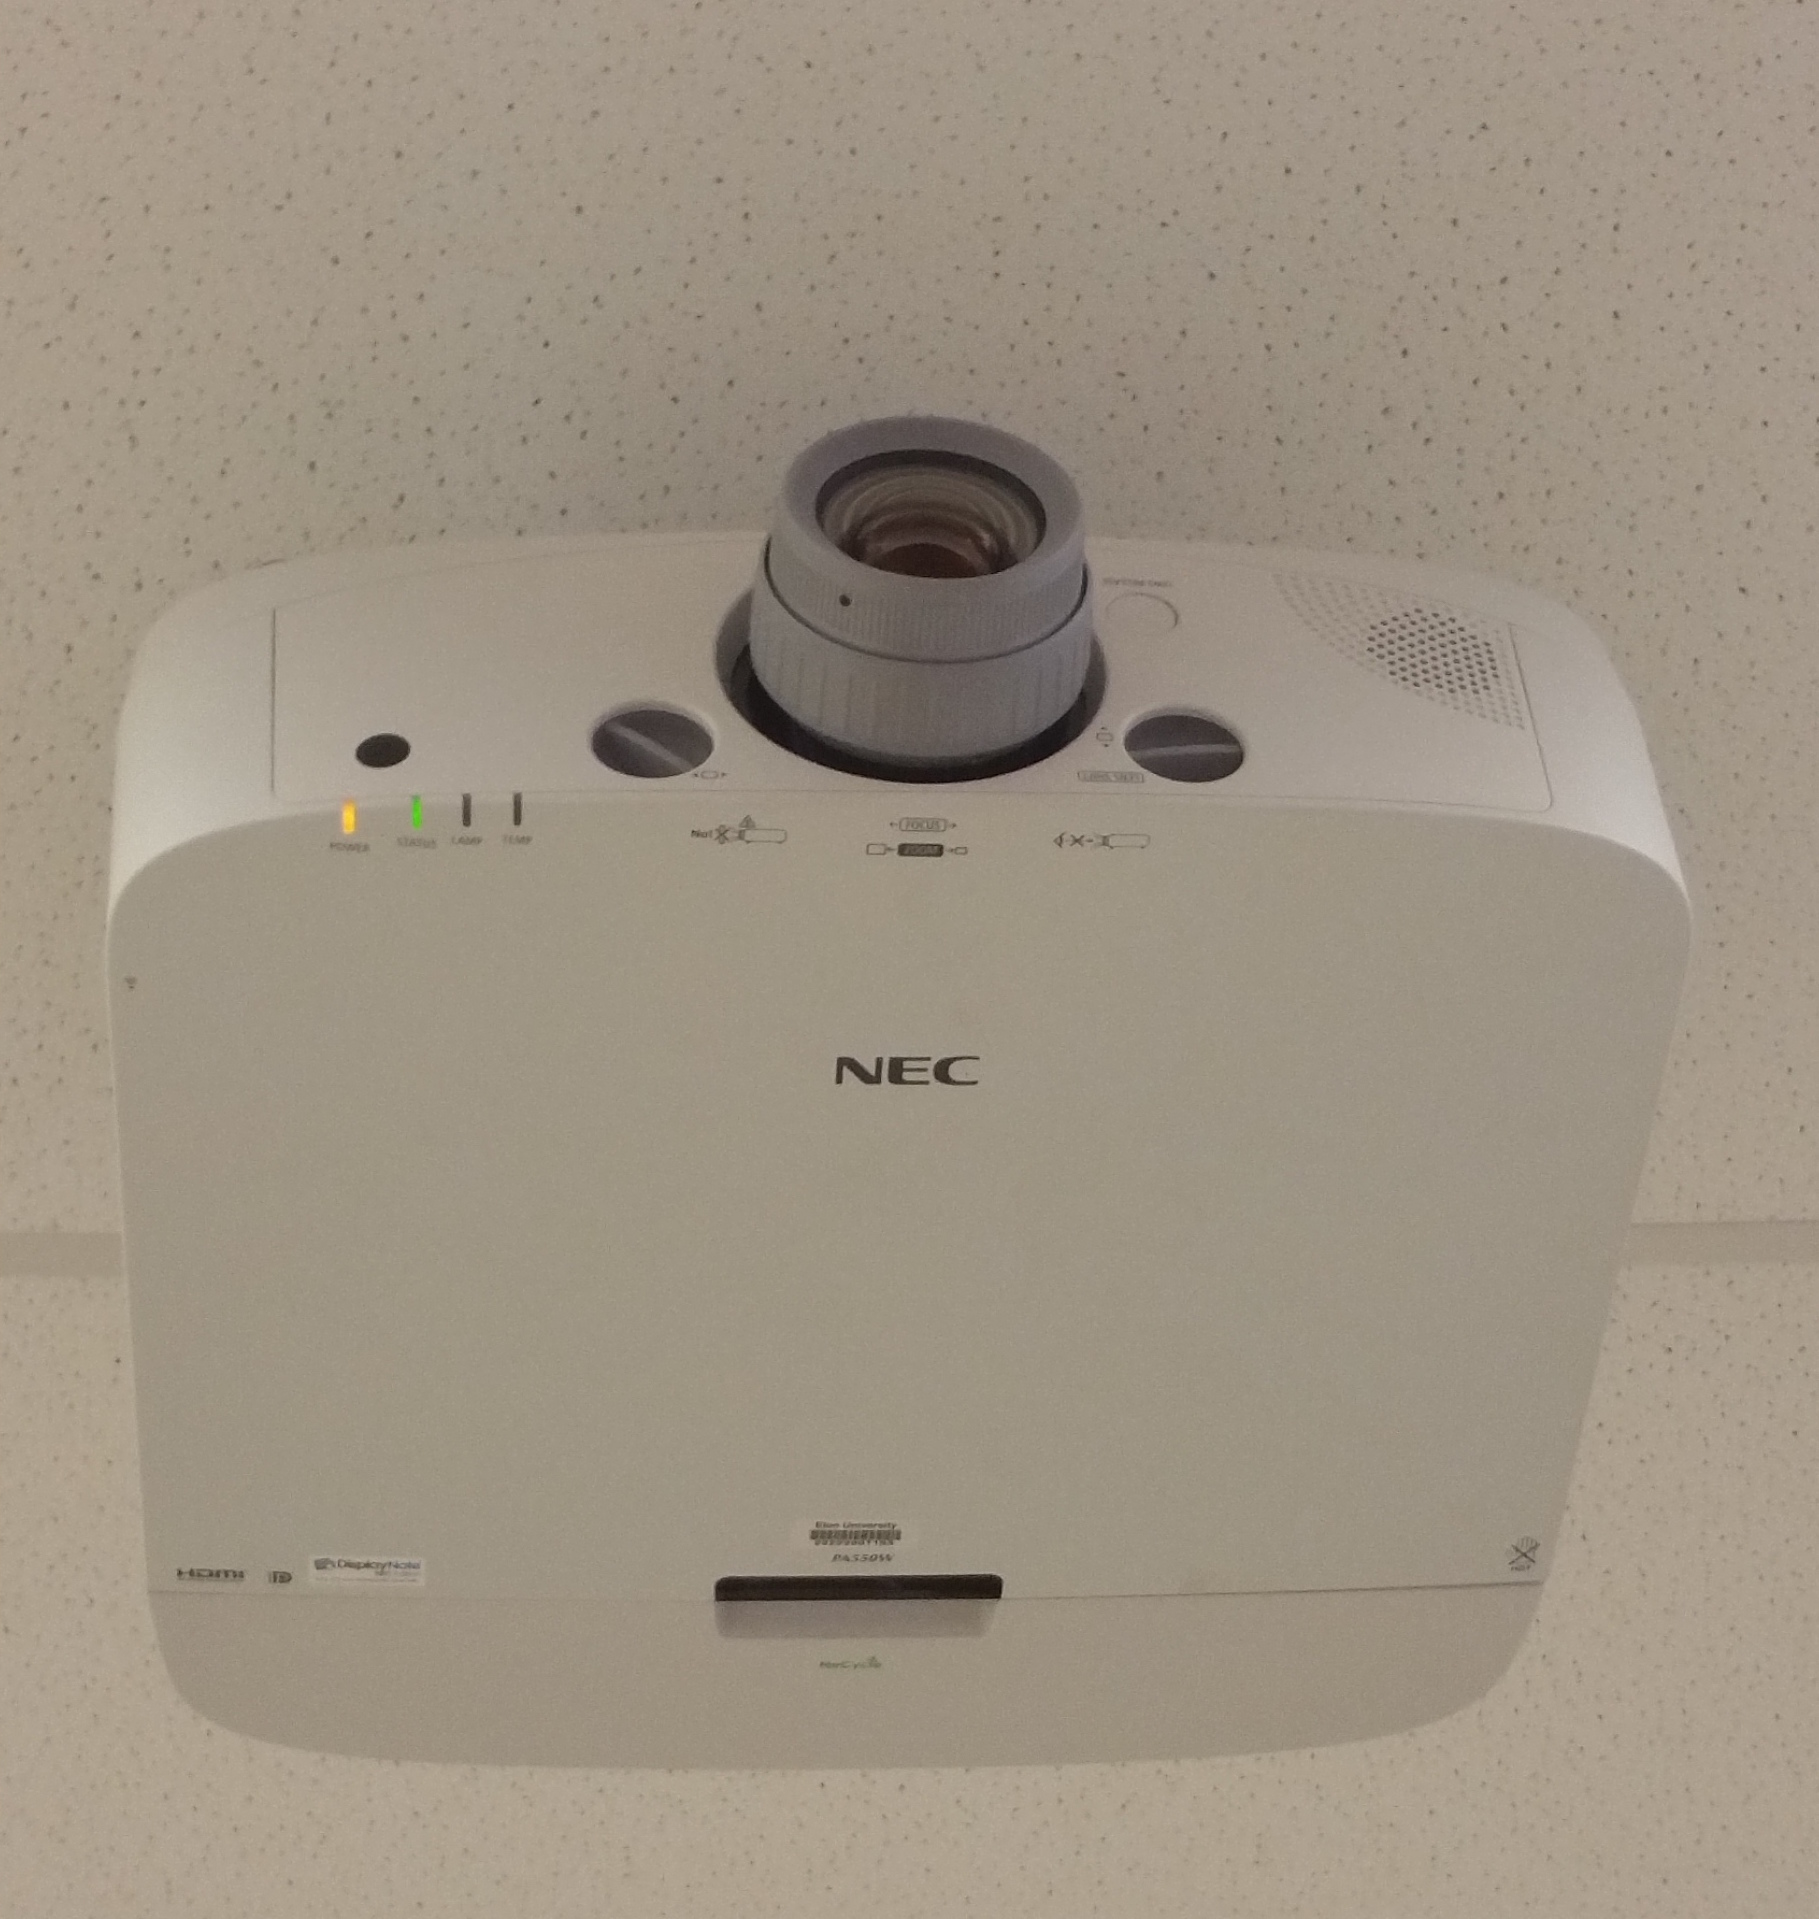 Photo of ceiling mounted NEC projector